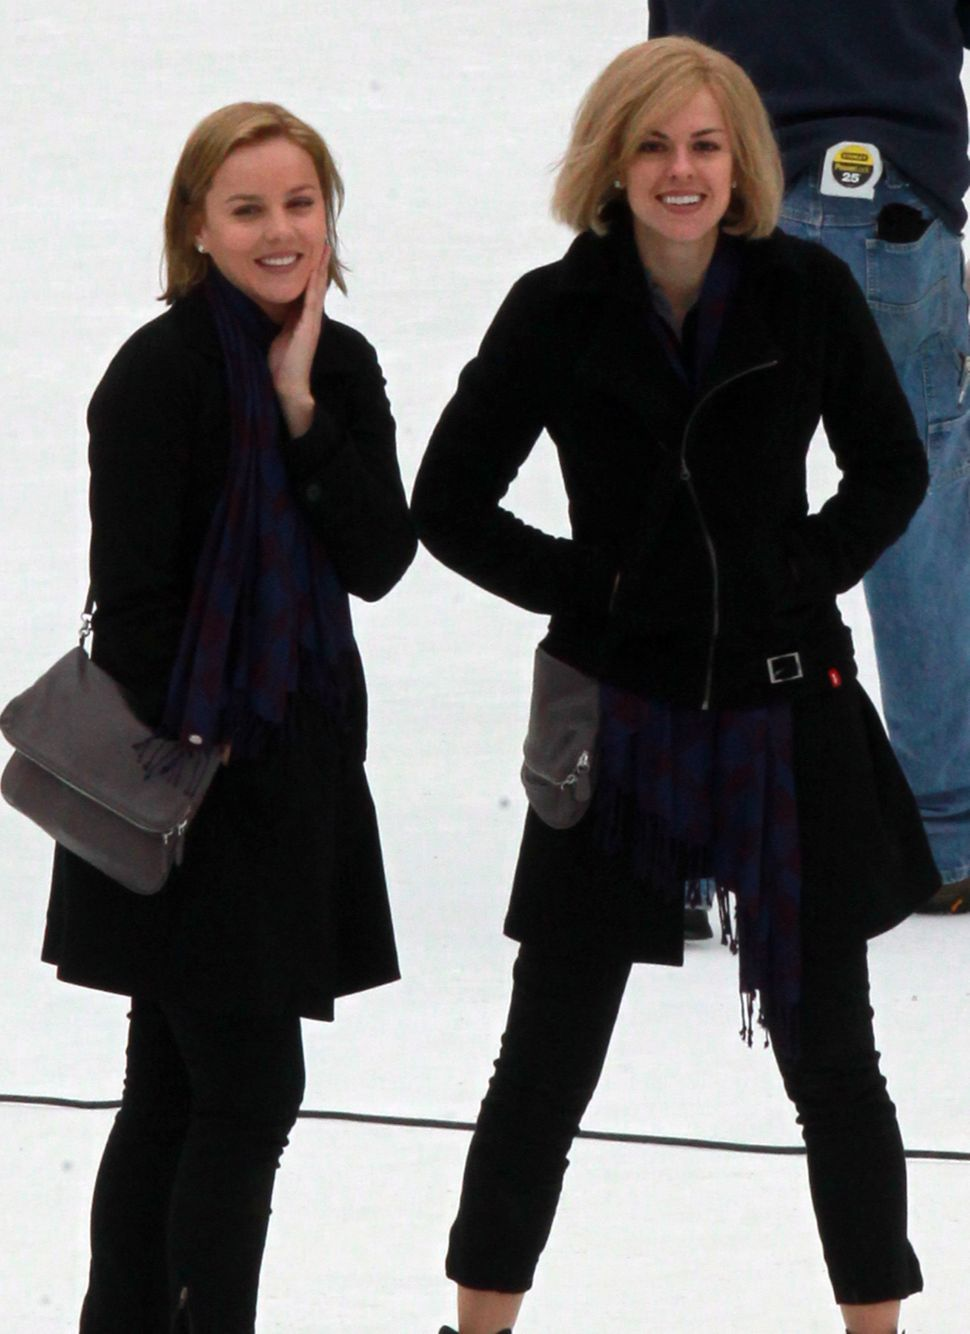 Actress Abbie Cornish, left, took to the ice with her stunt double in New York City, New York on March 31, 2010 to film her n